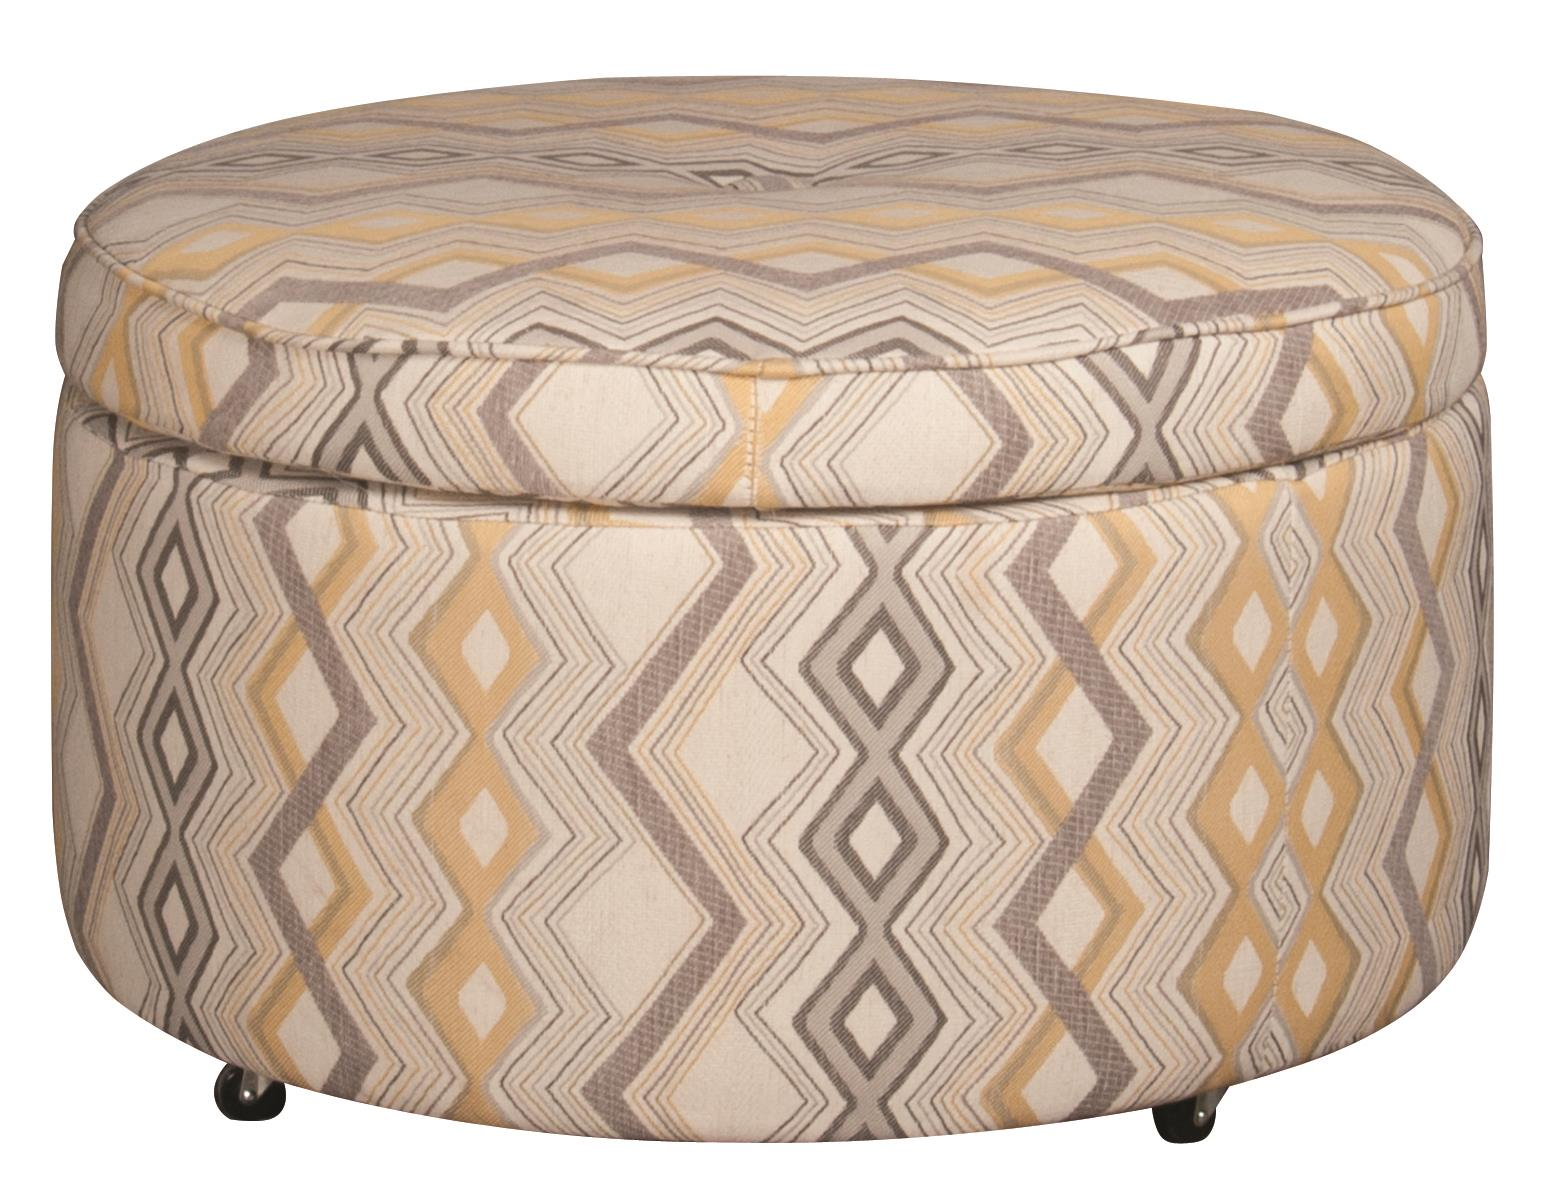 Santa Monica Eden Eden Castered Ottoman - Item Number: 116196451